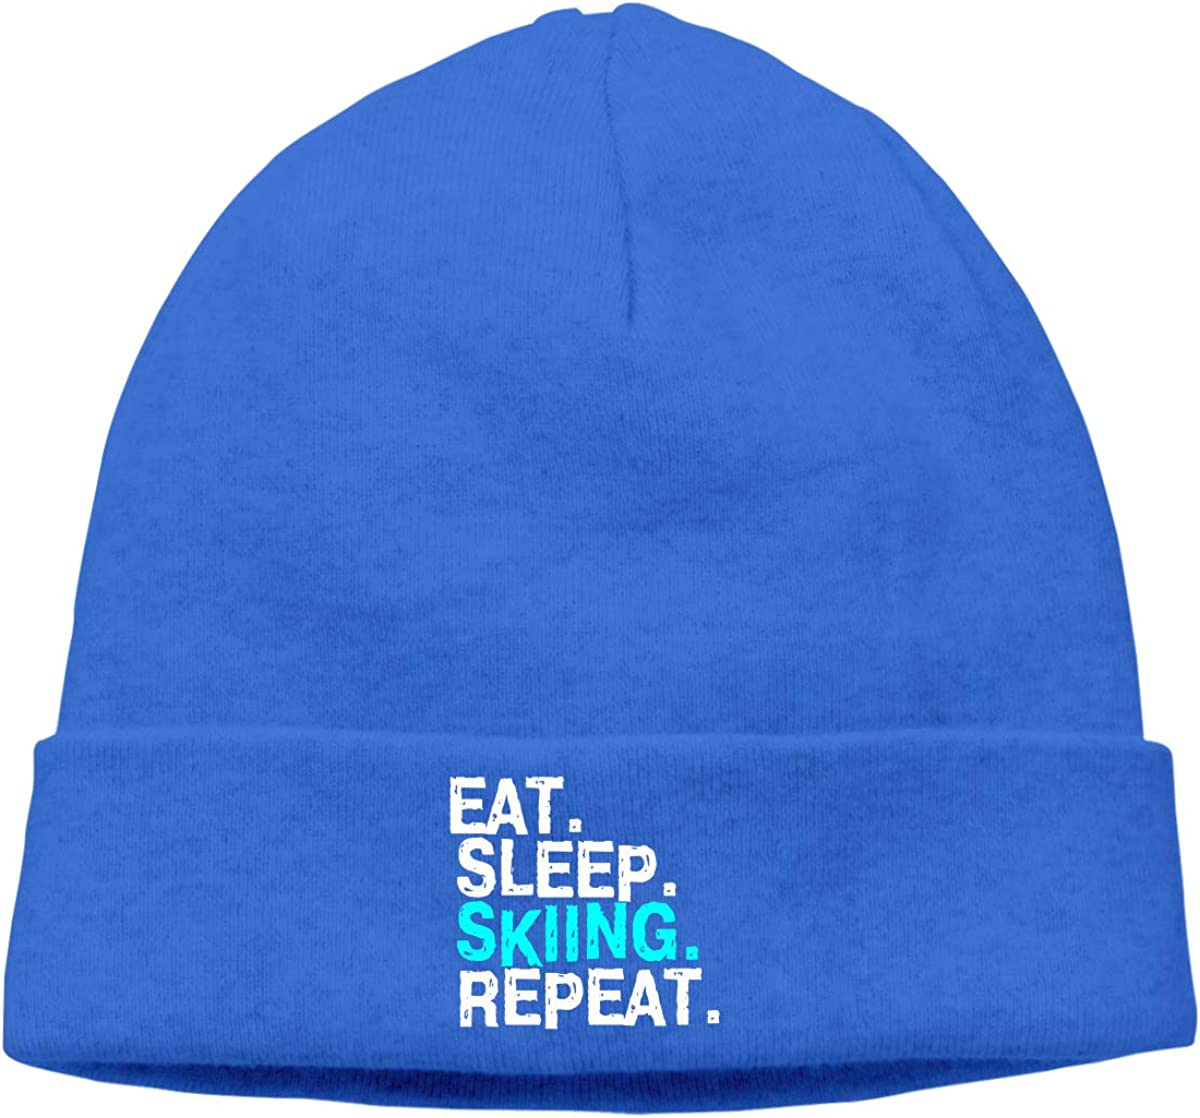 09/&JGJG Eat Sleep Skiing Repeat Men Women Knit Beanie Cap Outdoor Newsboy Hat